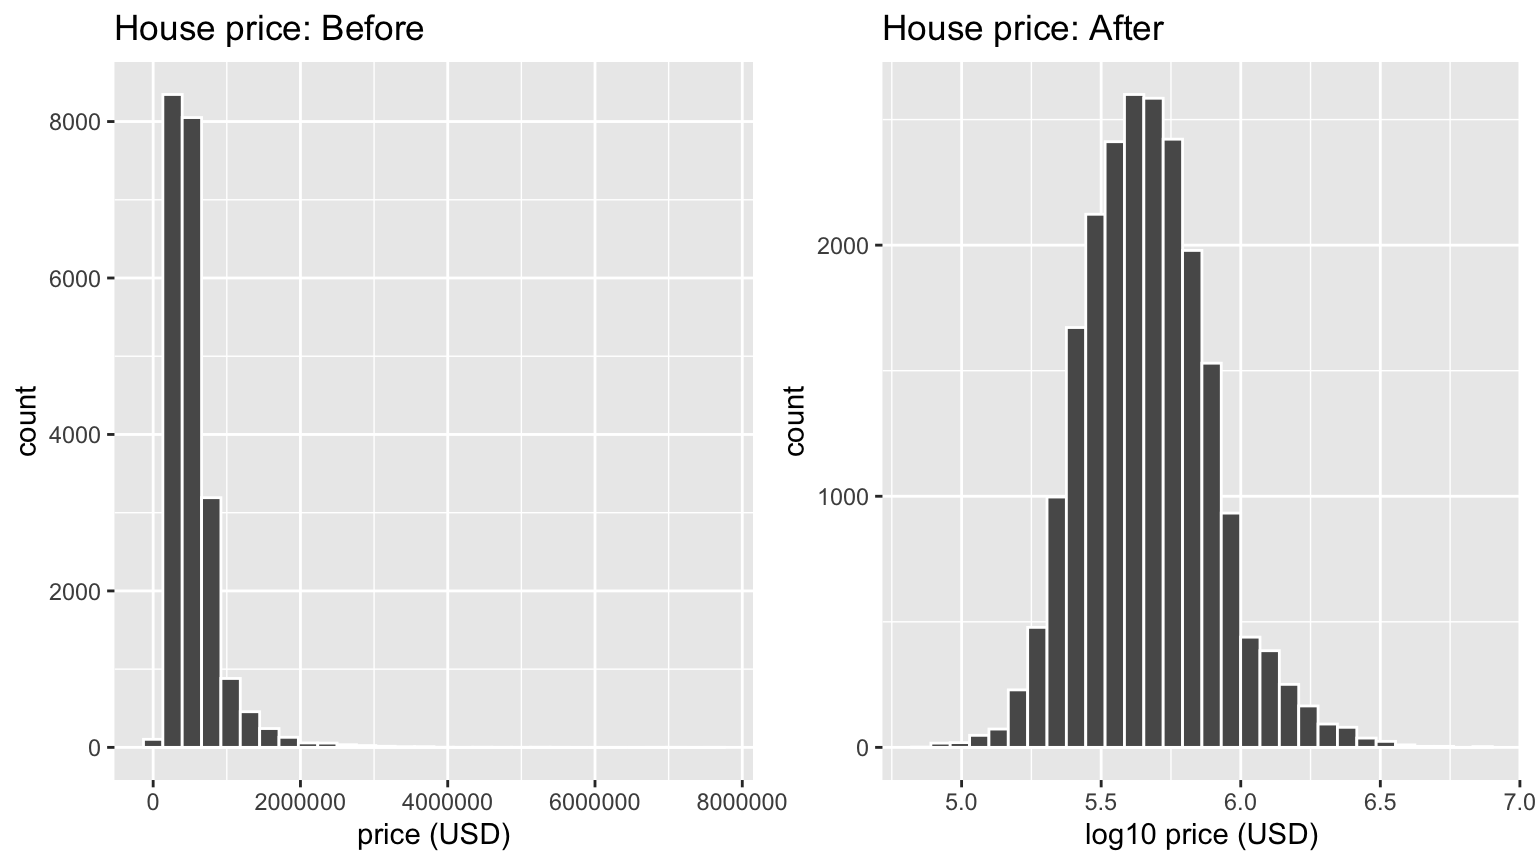 House price before and after log10-transformation.